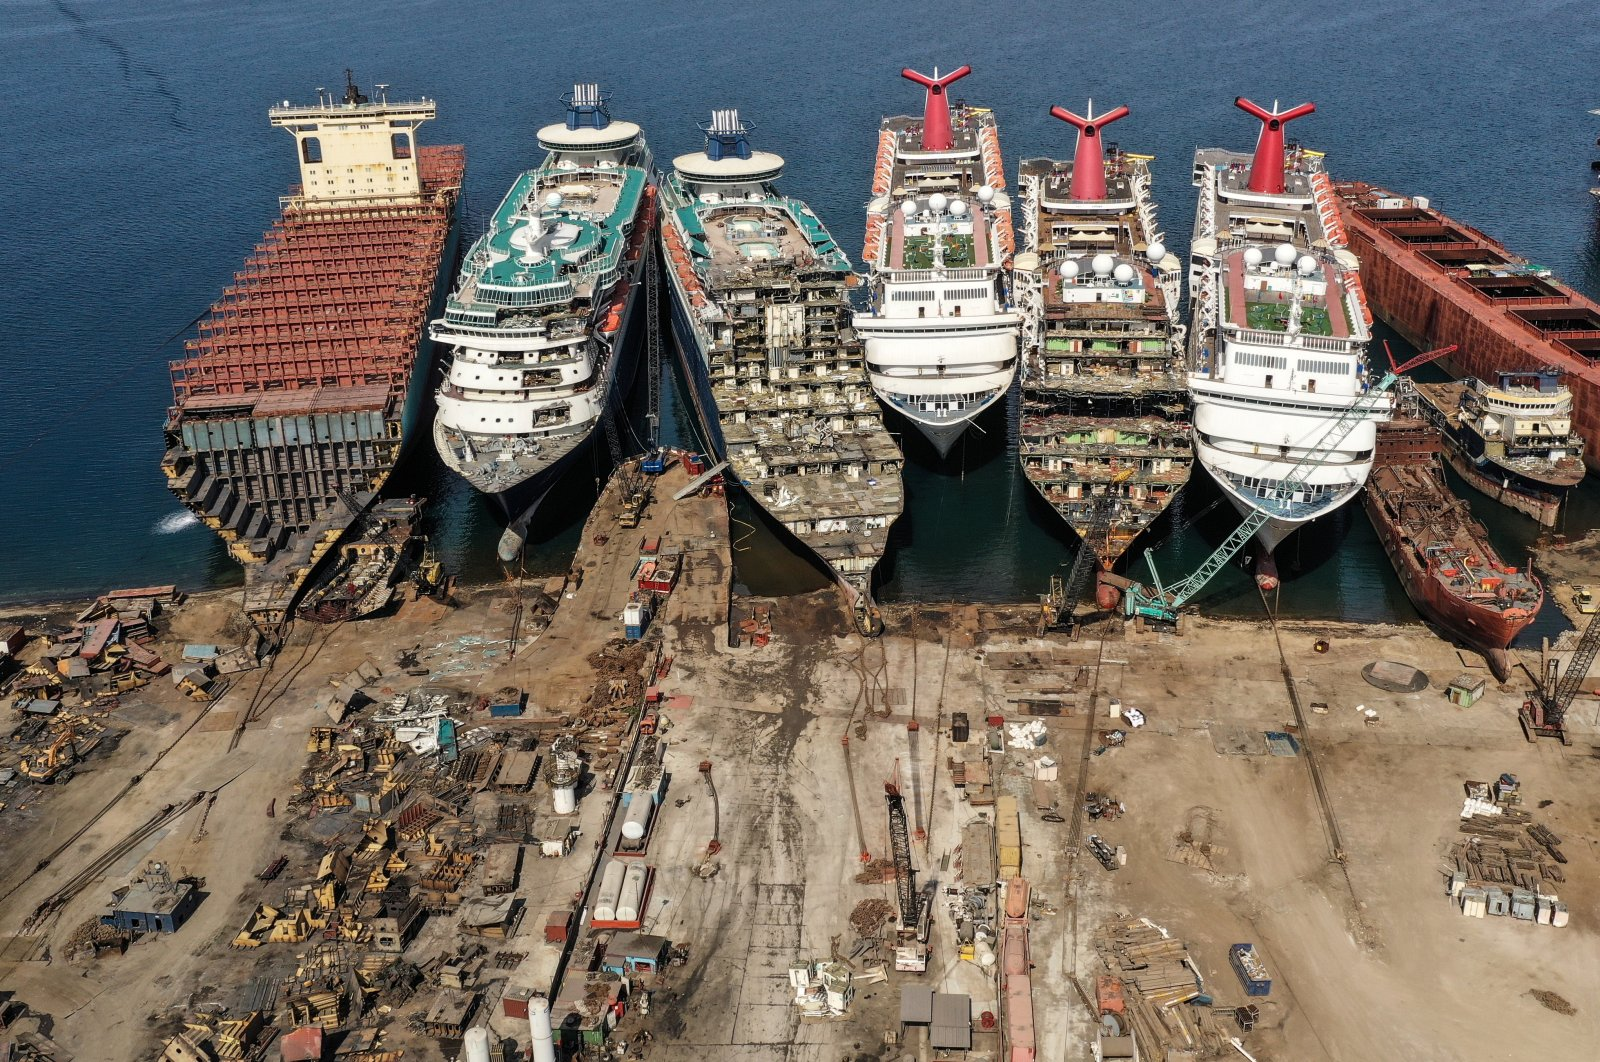 A drone image shows decommissioned cruise ships being dismantled at Aliağa ship-breaking yard in the Aegean port city of Izmir, western Turkey, Oct. 2, 2020. (Reuters Photo)